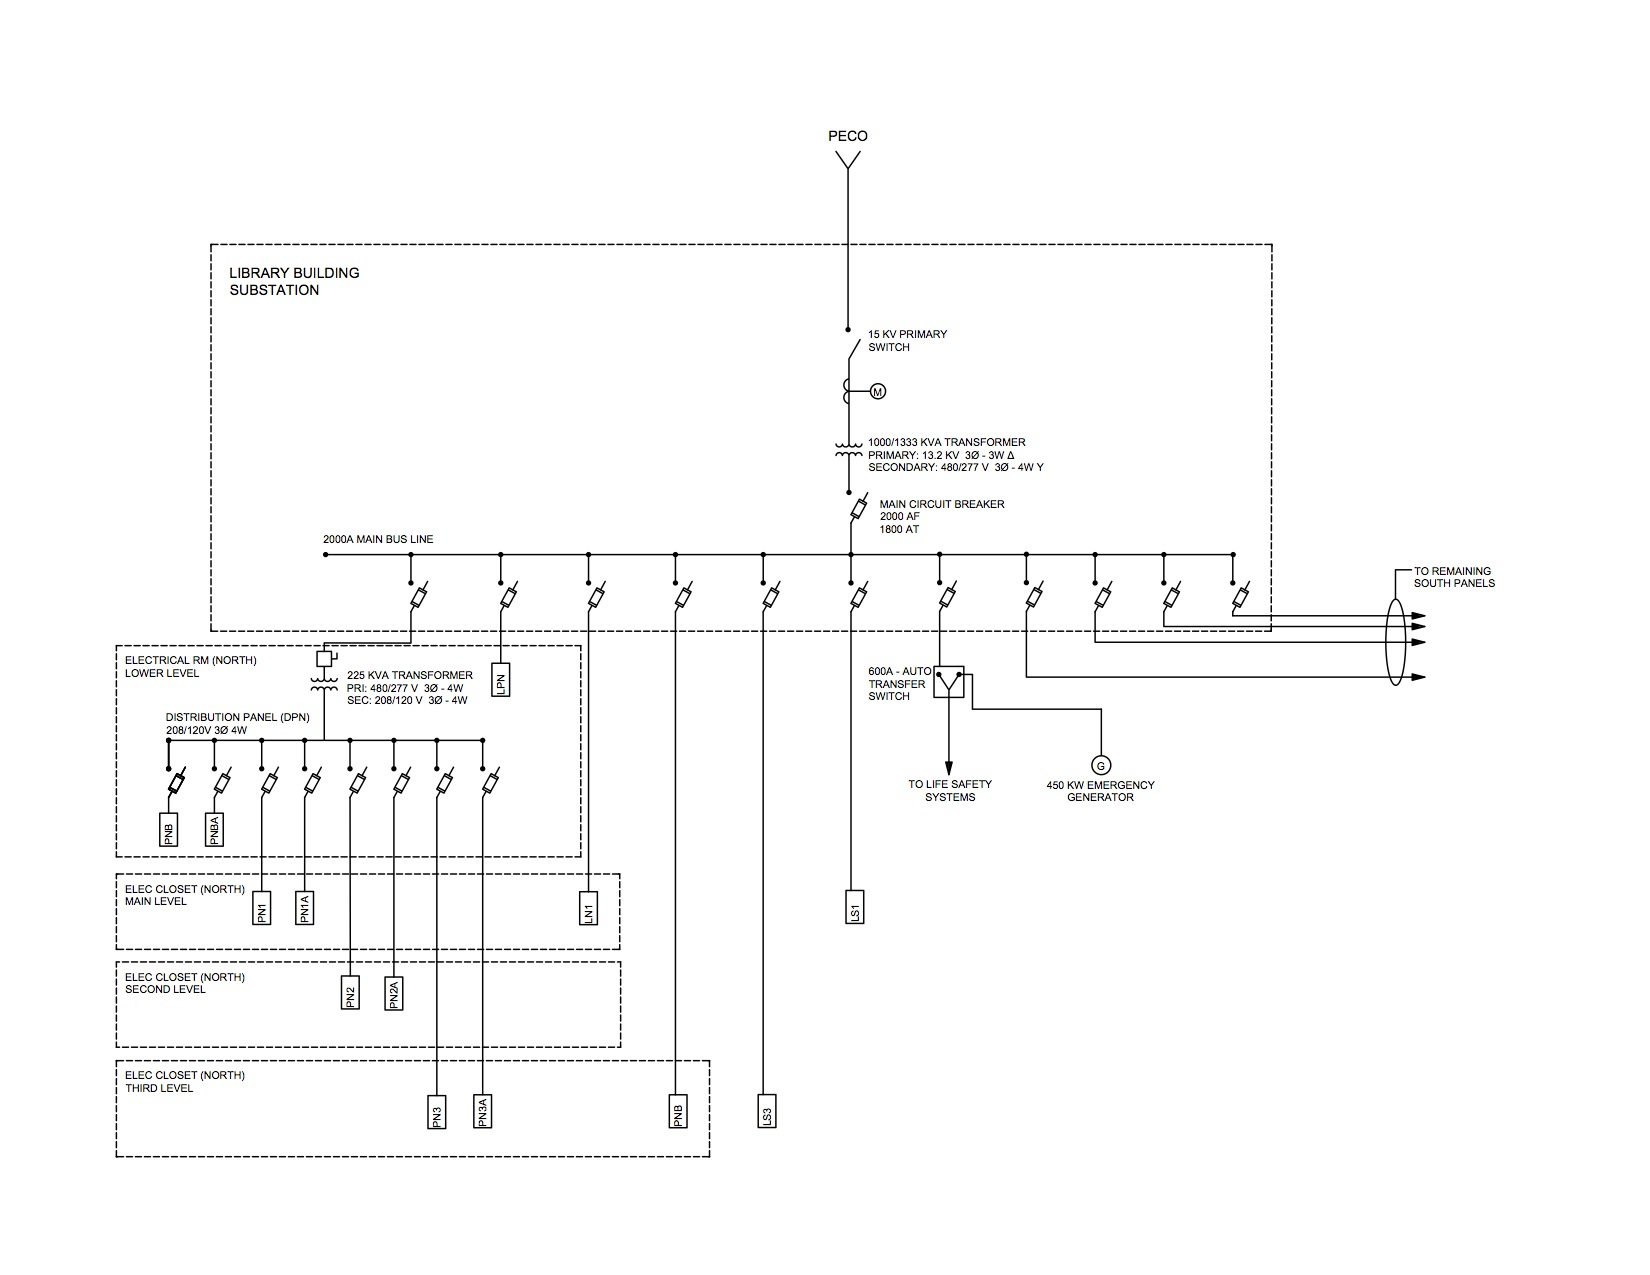 hager mcb wiring diagram telephone line uk 301 moved permanently